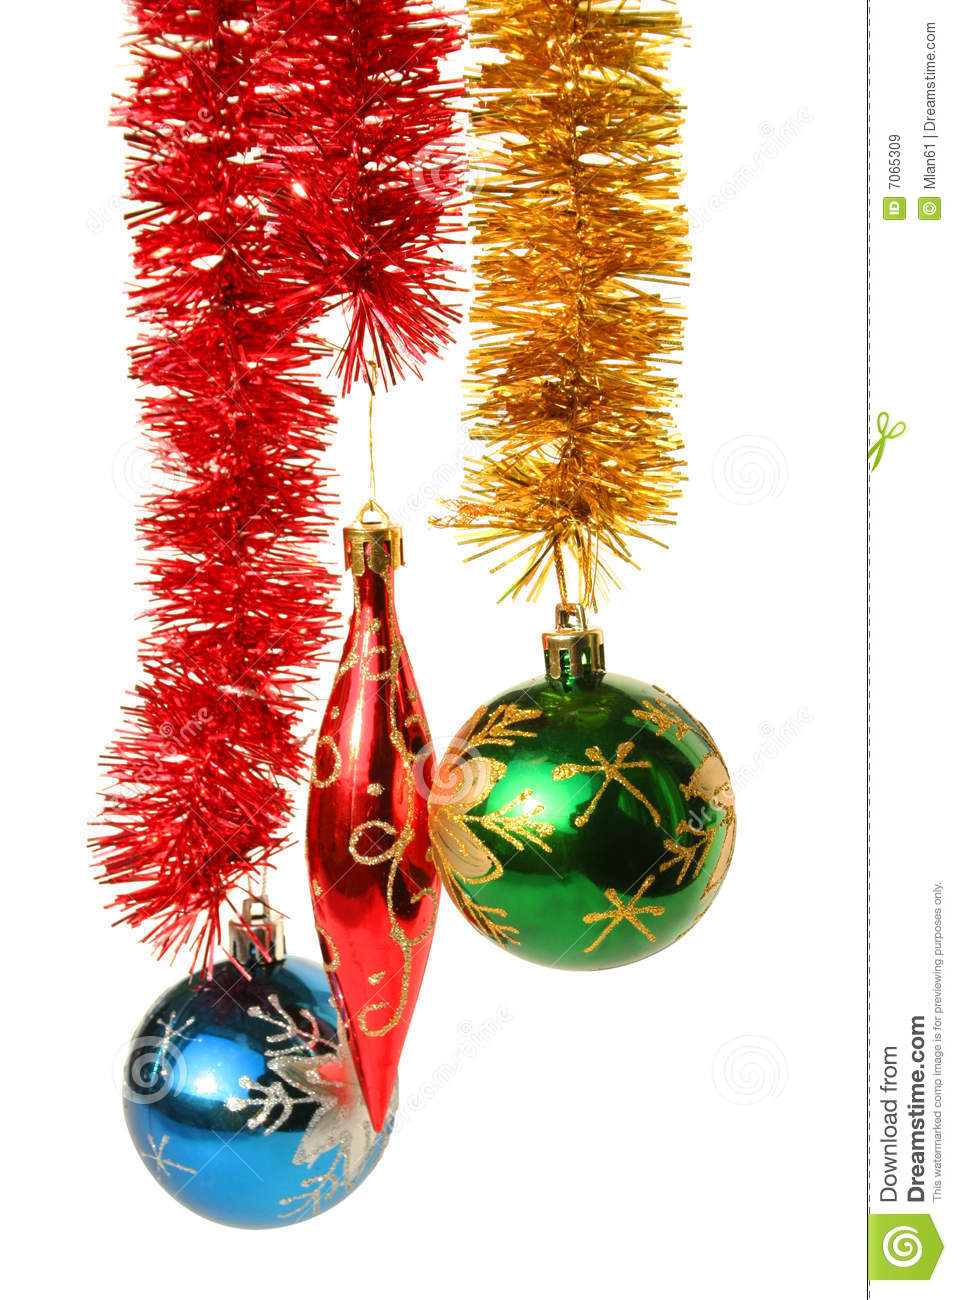 Hanging christmas ornaments stock image image 7065309 - Hanging christmas ornaments ...